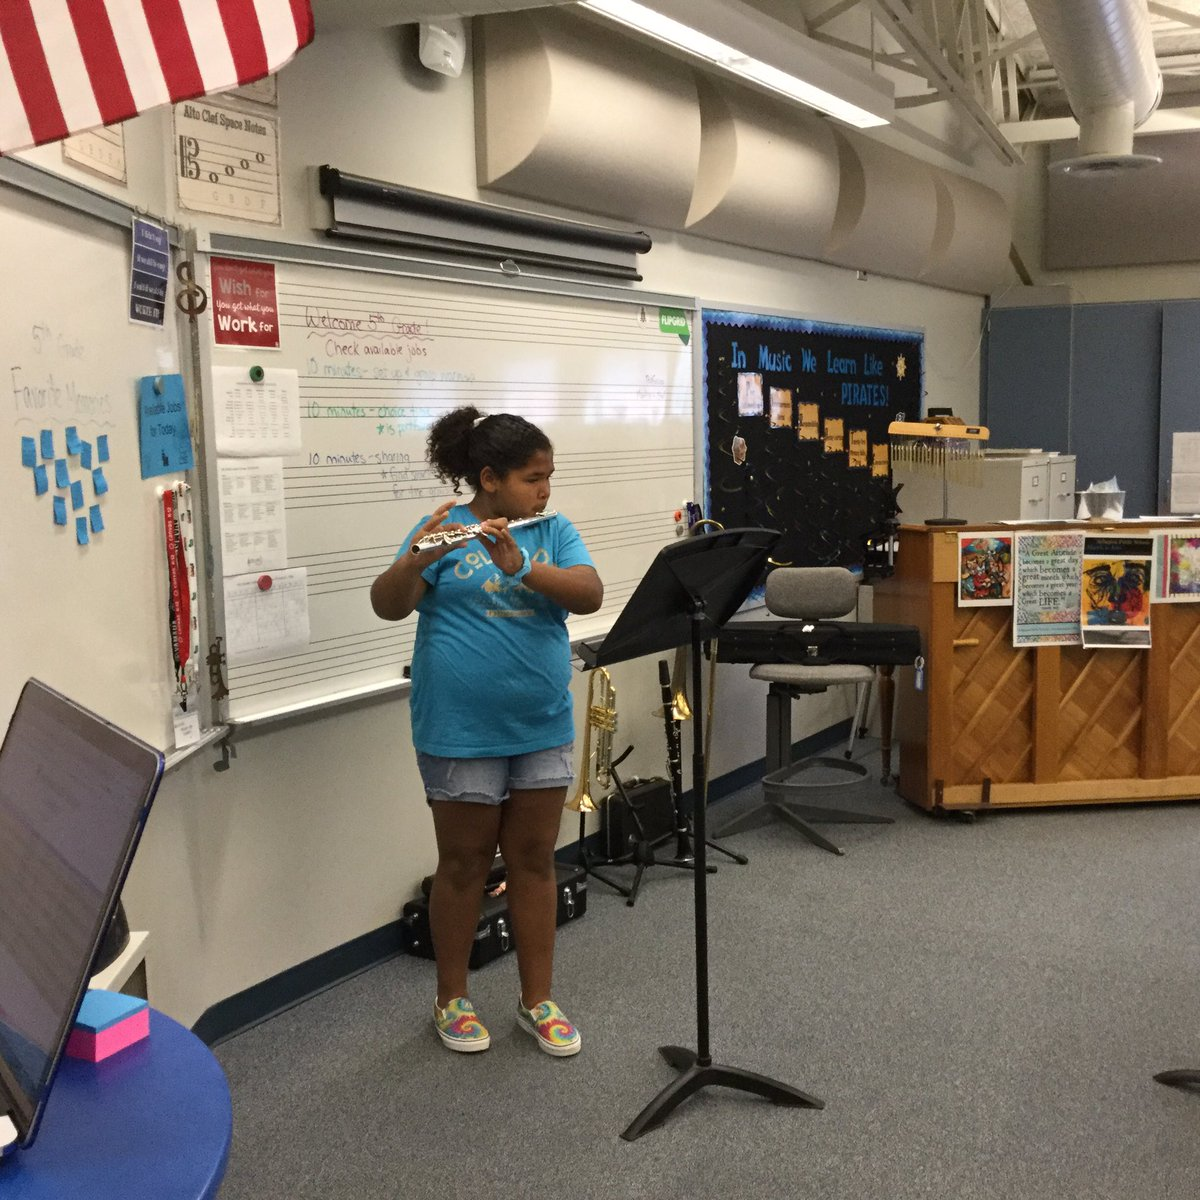 The school year is wrapping up, but we are still making beautiful music! 5th graders took turns performing favorite songs for their classmates 🎶🎻🎺🎷 <a target='_blank' href='http://search.twitter.com/search?q=InMusicClass'><a target='_blank' href='https://twitter.com/hashtag/InMusicClass?src=hash'>#InMusicClass</a></a> <a target='_blank' href='https://t.co/HmVxYQyjSS'>https://t.co/HmVxYQyjSS</a>